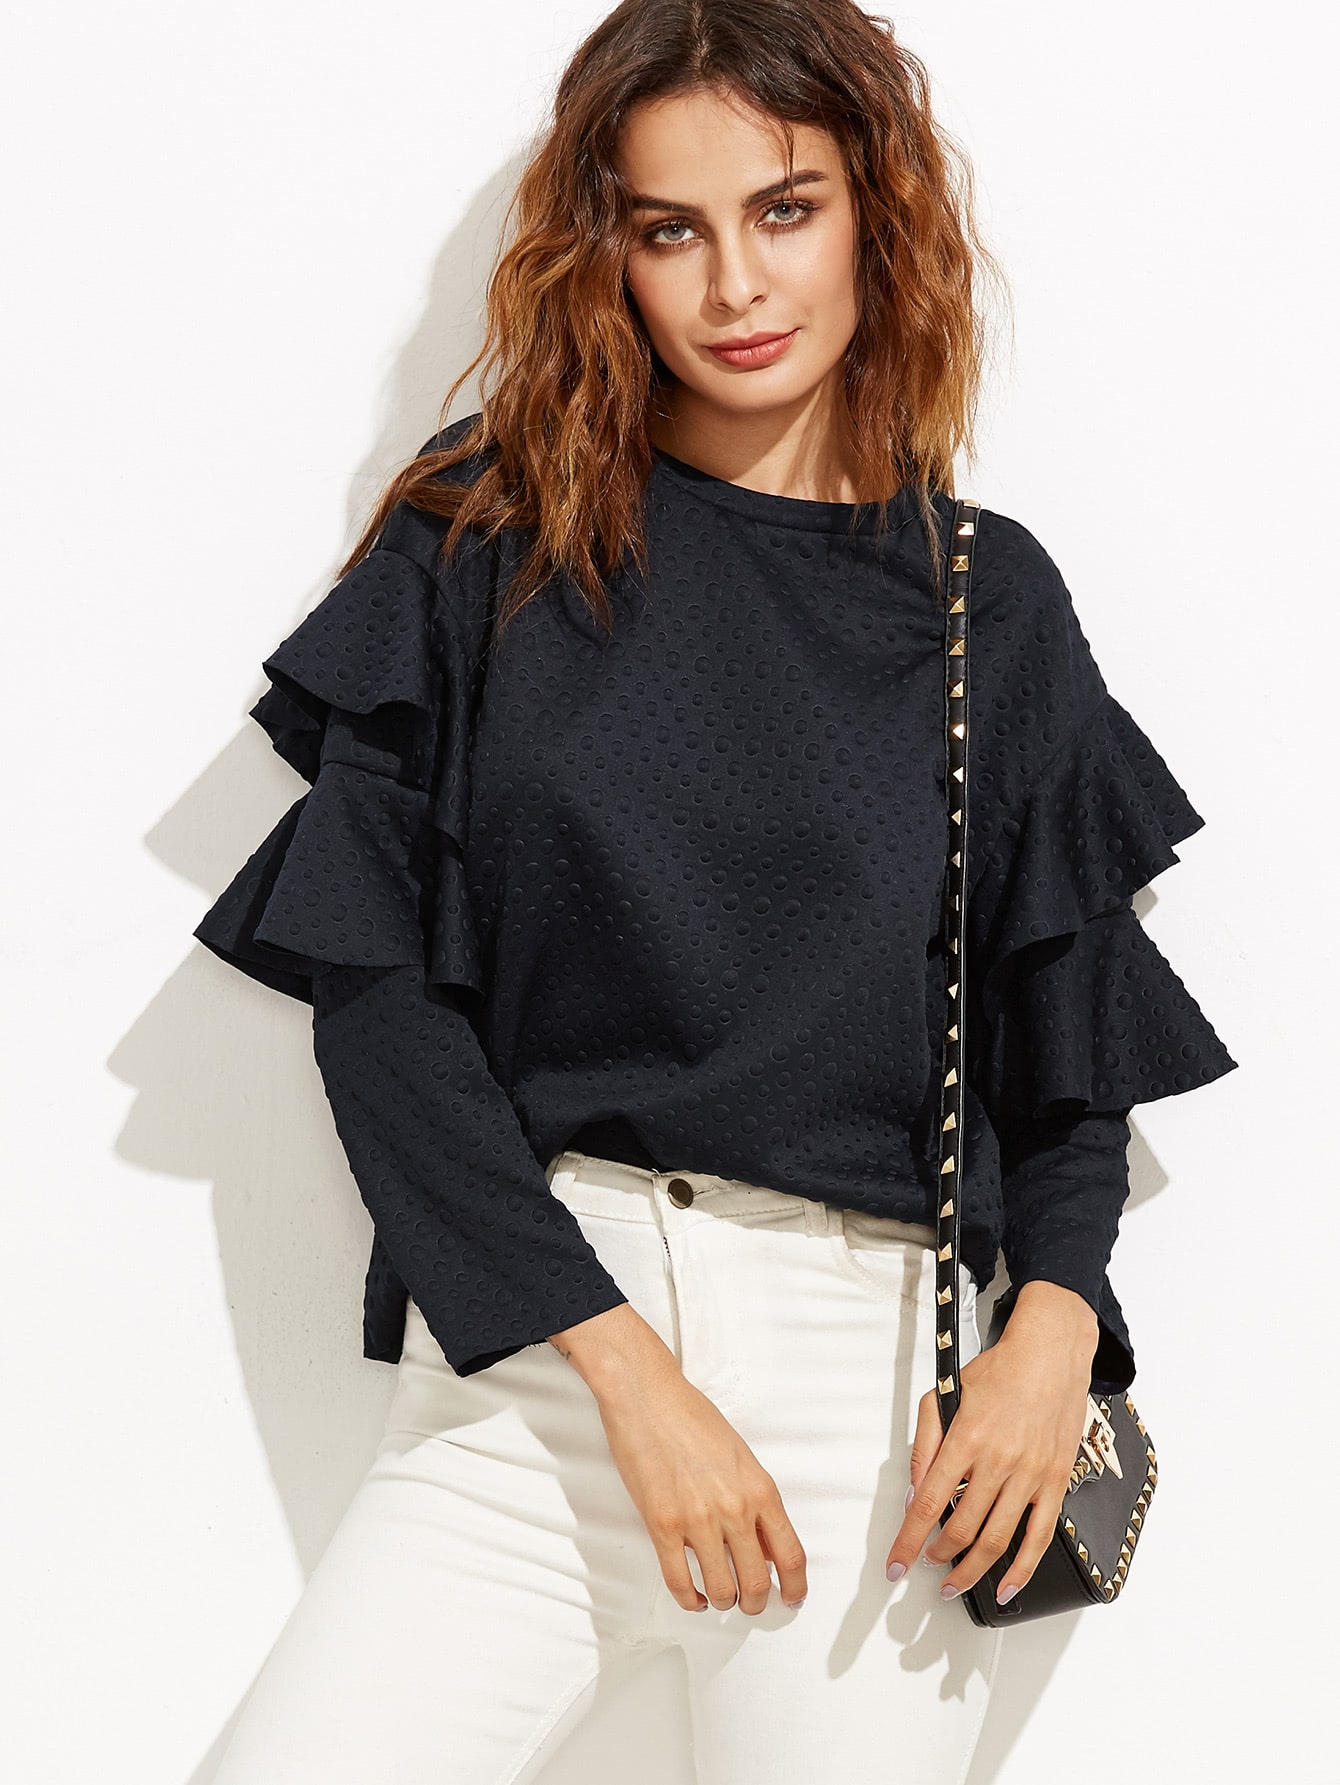 Black Polka Dot Embossed Layered Ruffle Sleeve BlouseBlack Polka Dot Embossed Layered Ruffle Sleeve Blouse<br><br>color: Navy<br>size: L,M,S,XS